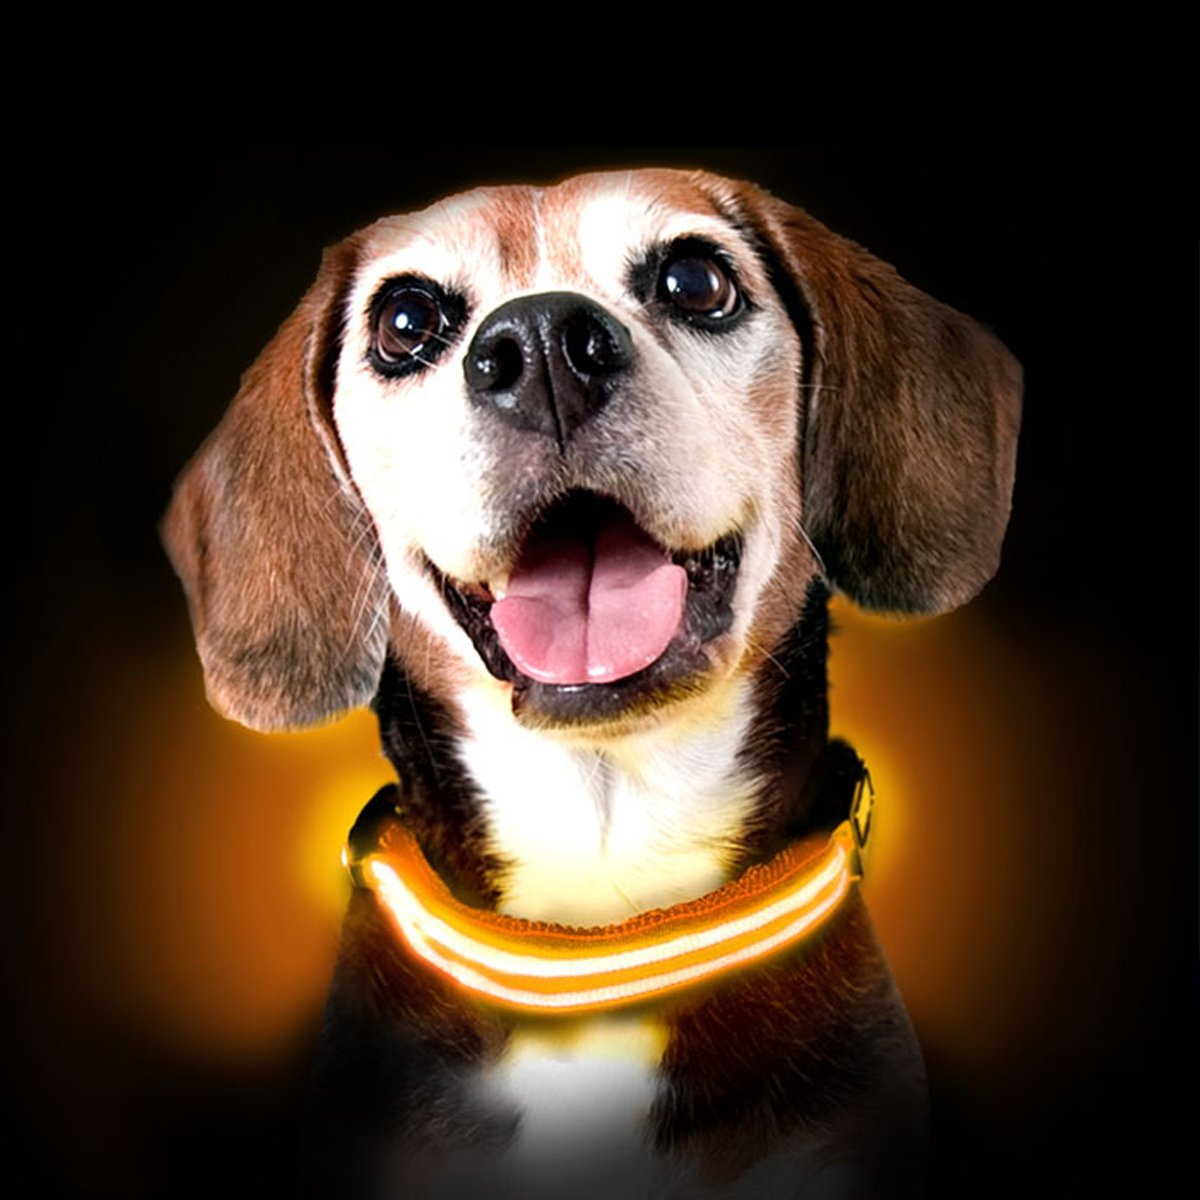 orange Medium 13-19in   33-48cm orange Medium 13-19in   33-48cm Ultimate LED Dog Collar USB Rechargeable, Cable Included, 5 Awesome colors. Ultra Bright, Durable, Made to Last. Make Your Dog More Visible at Night. (Medium, orange)